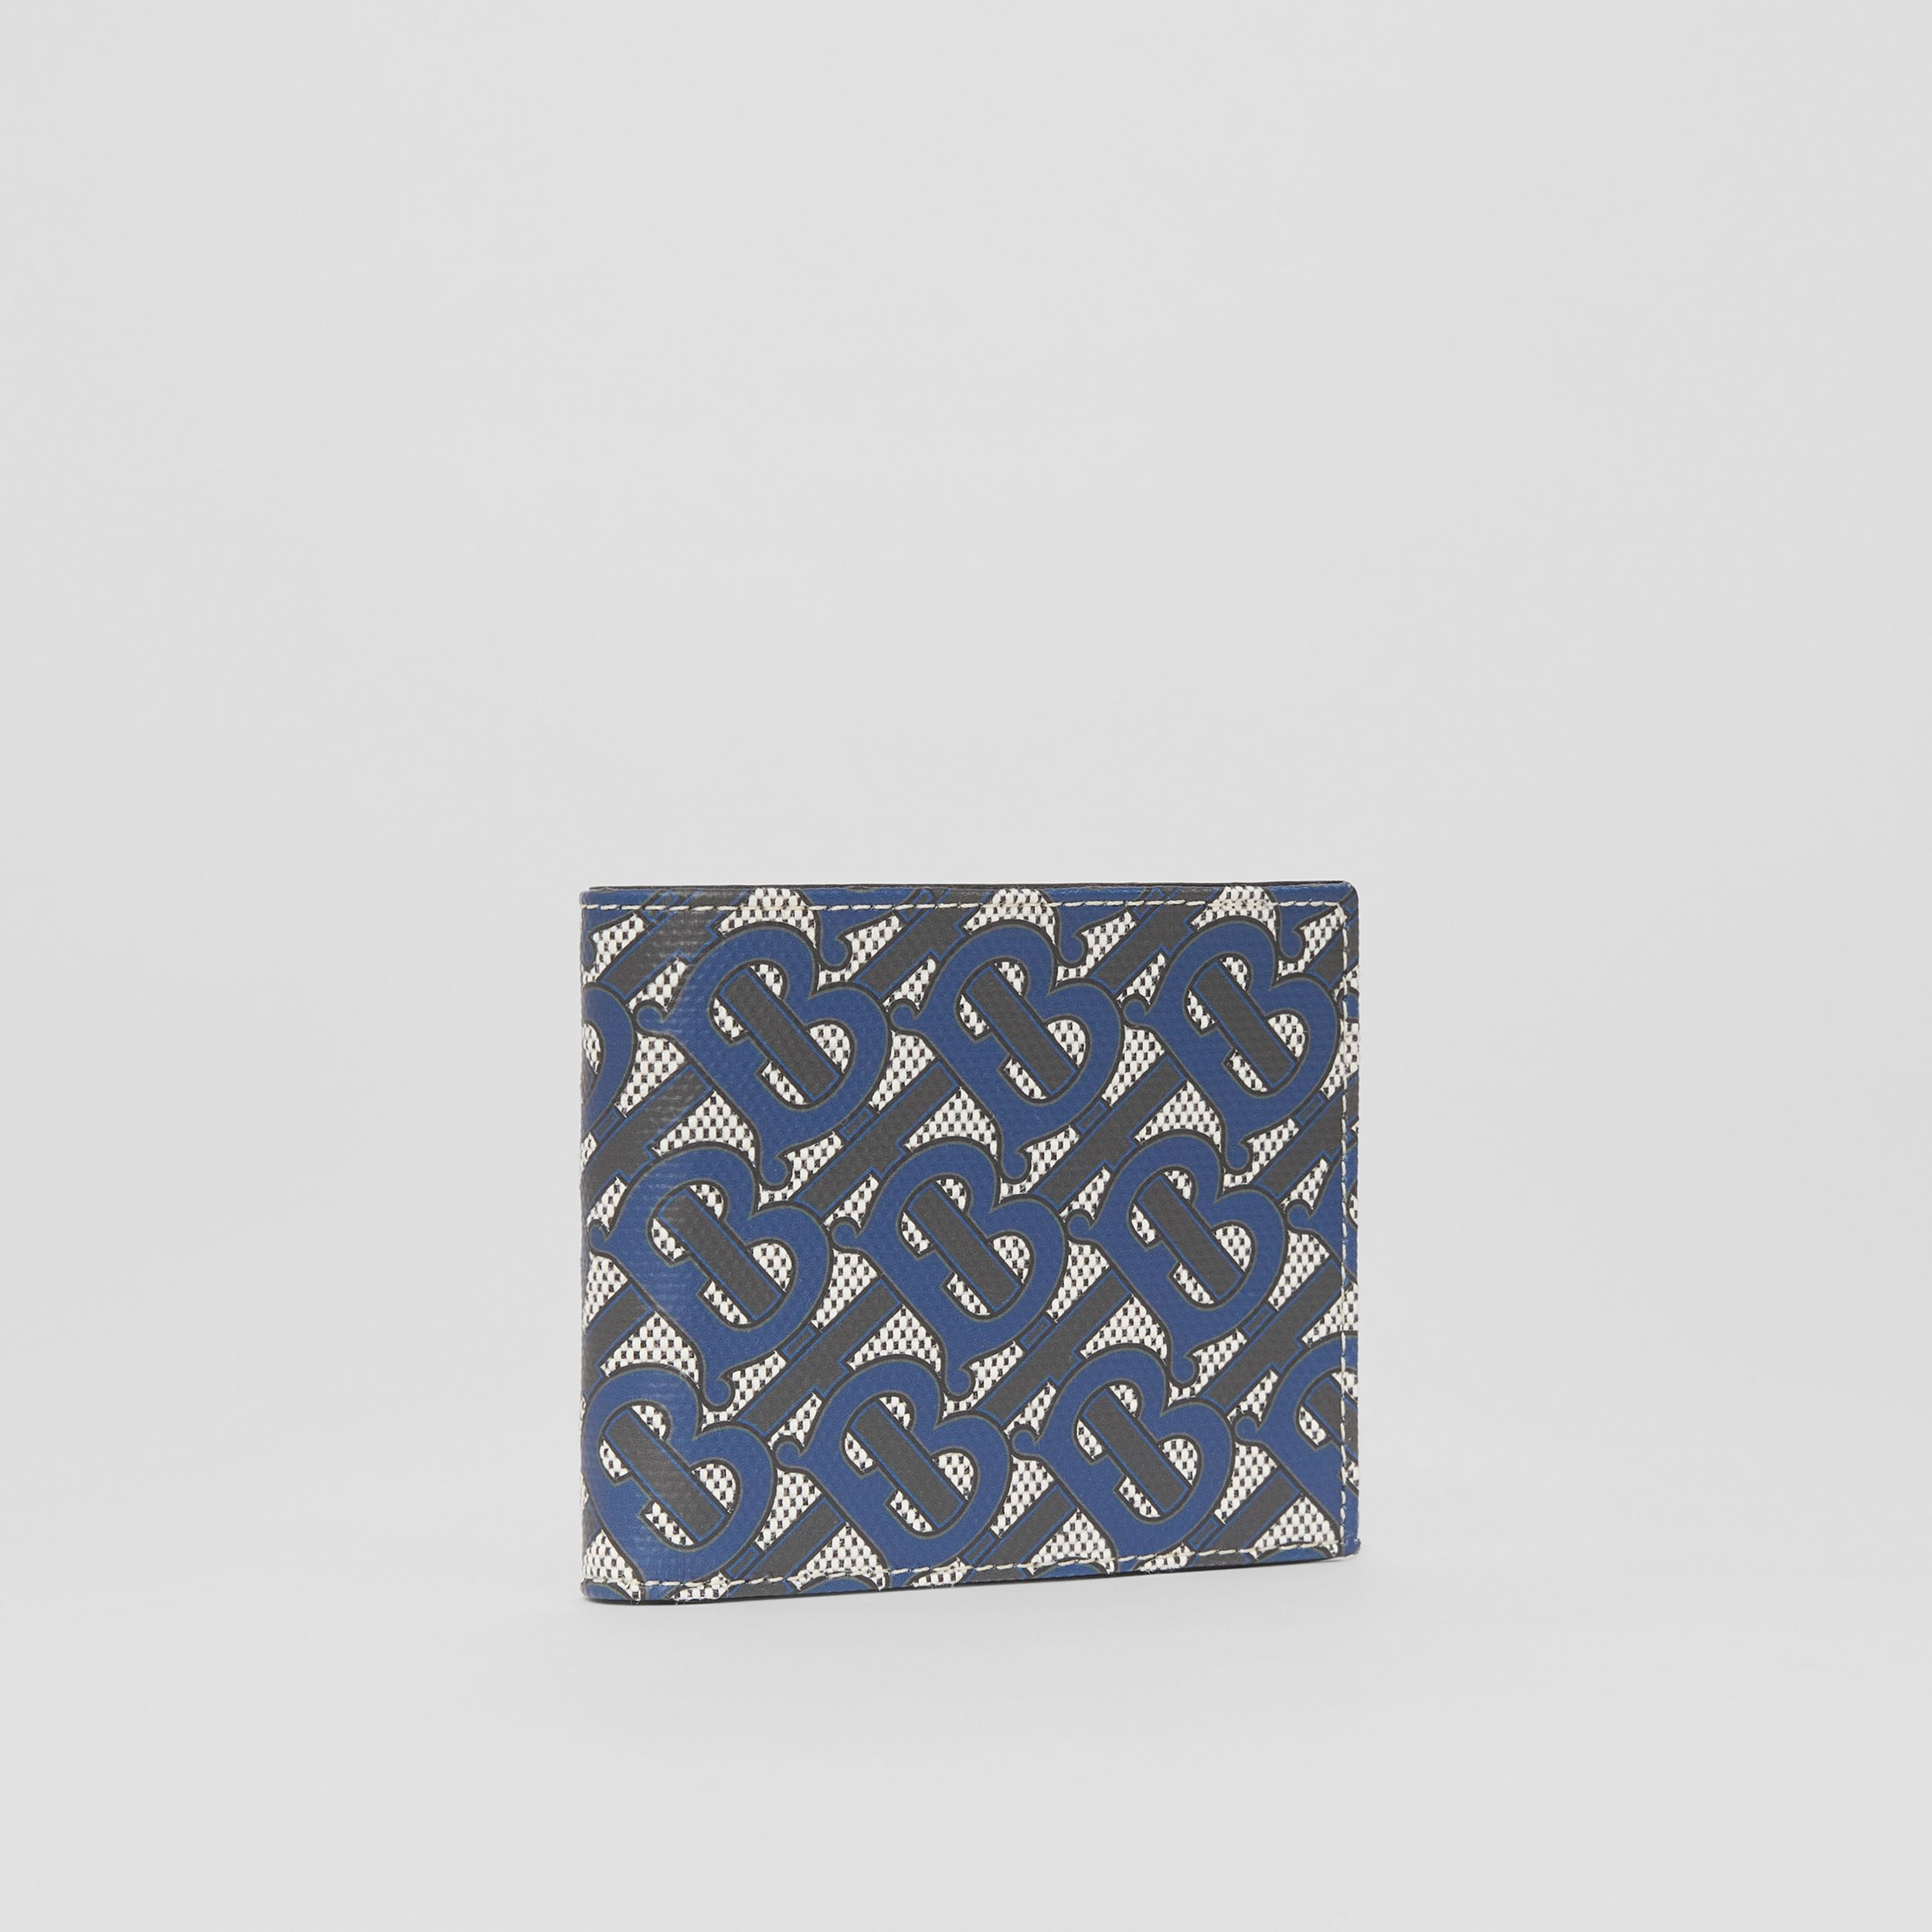 Monogram Print Canvas International Bifold Wallet in Ink Blue - Men | Burberry - 4